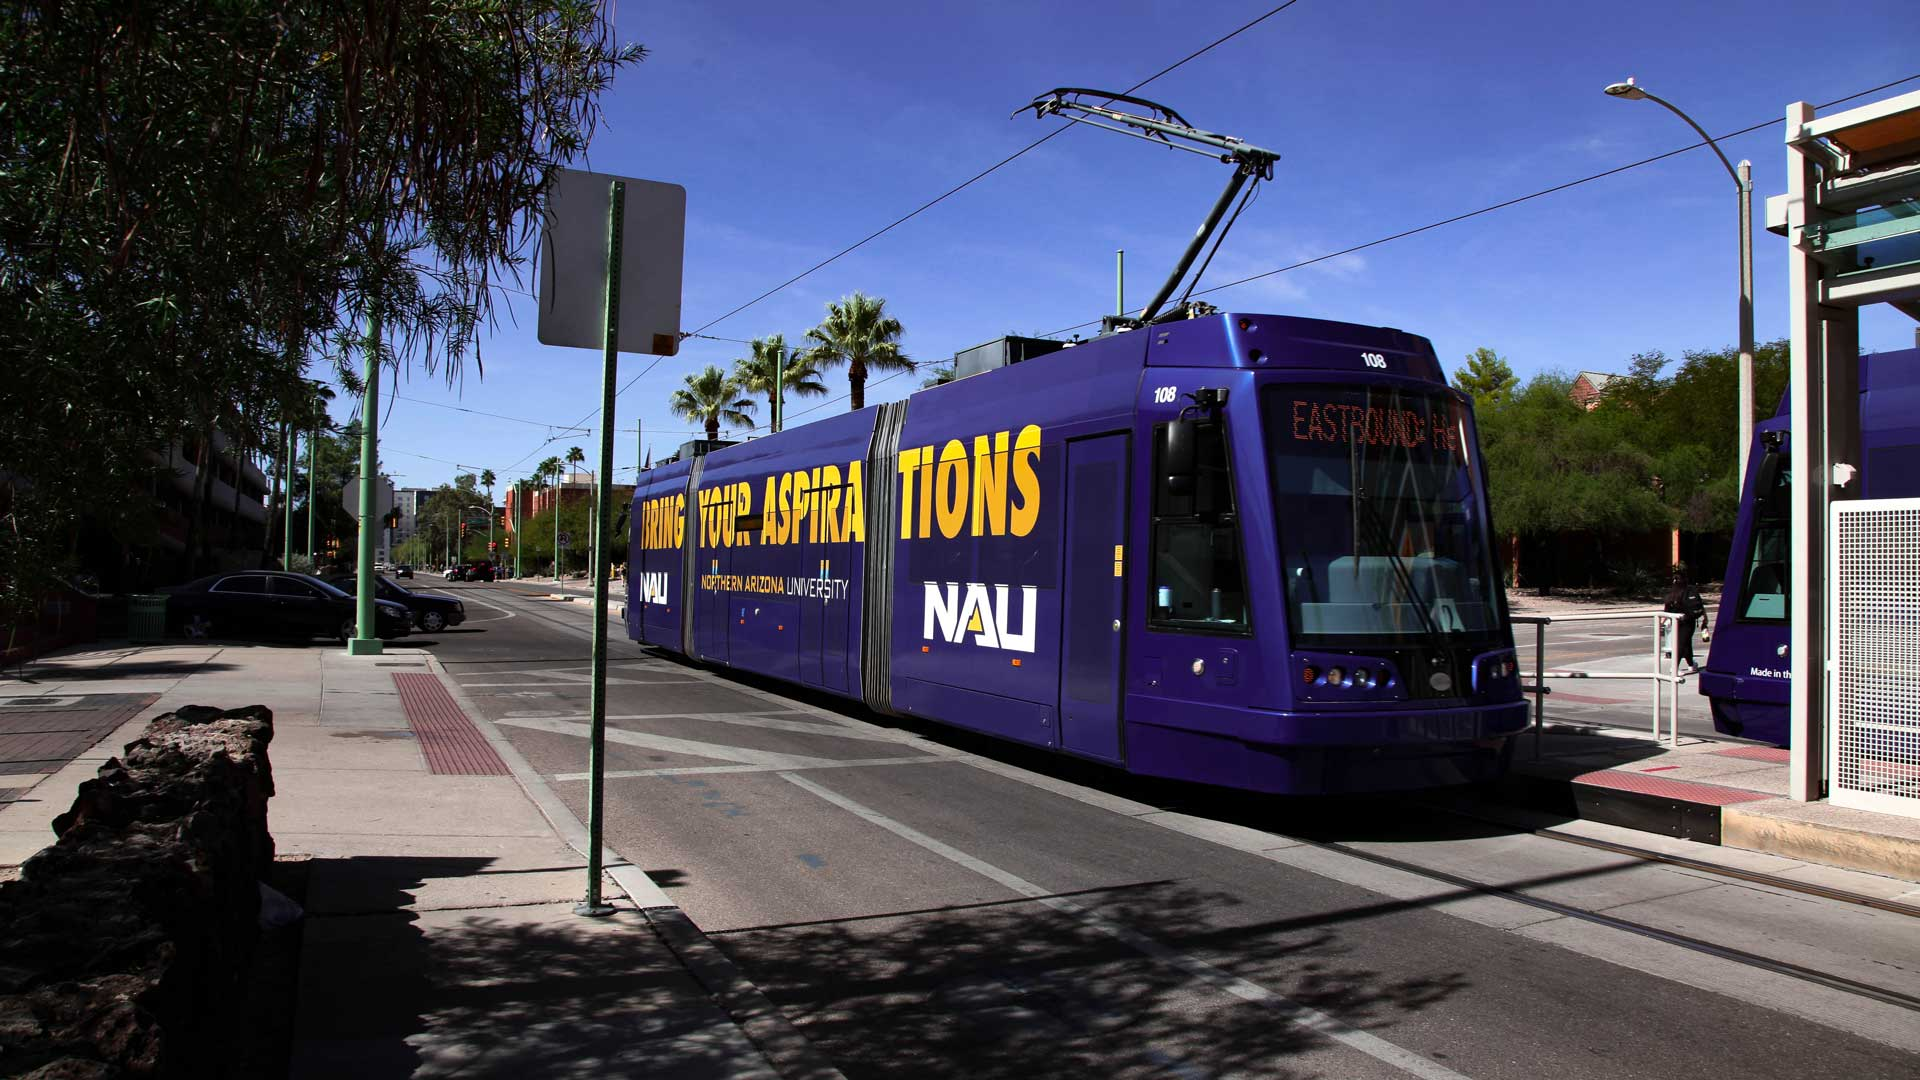 The Sunlink streetcar has been in operation 5 years.